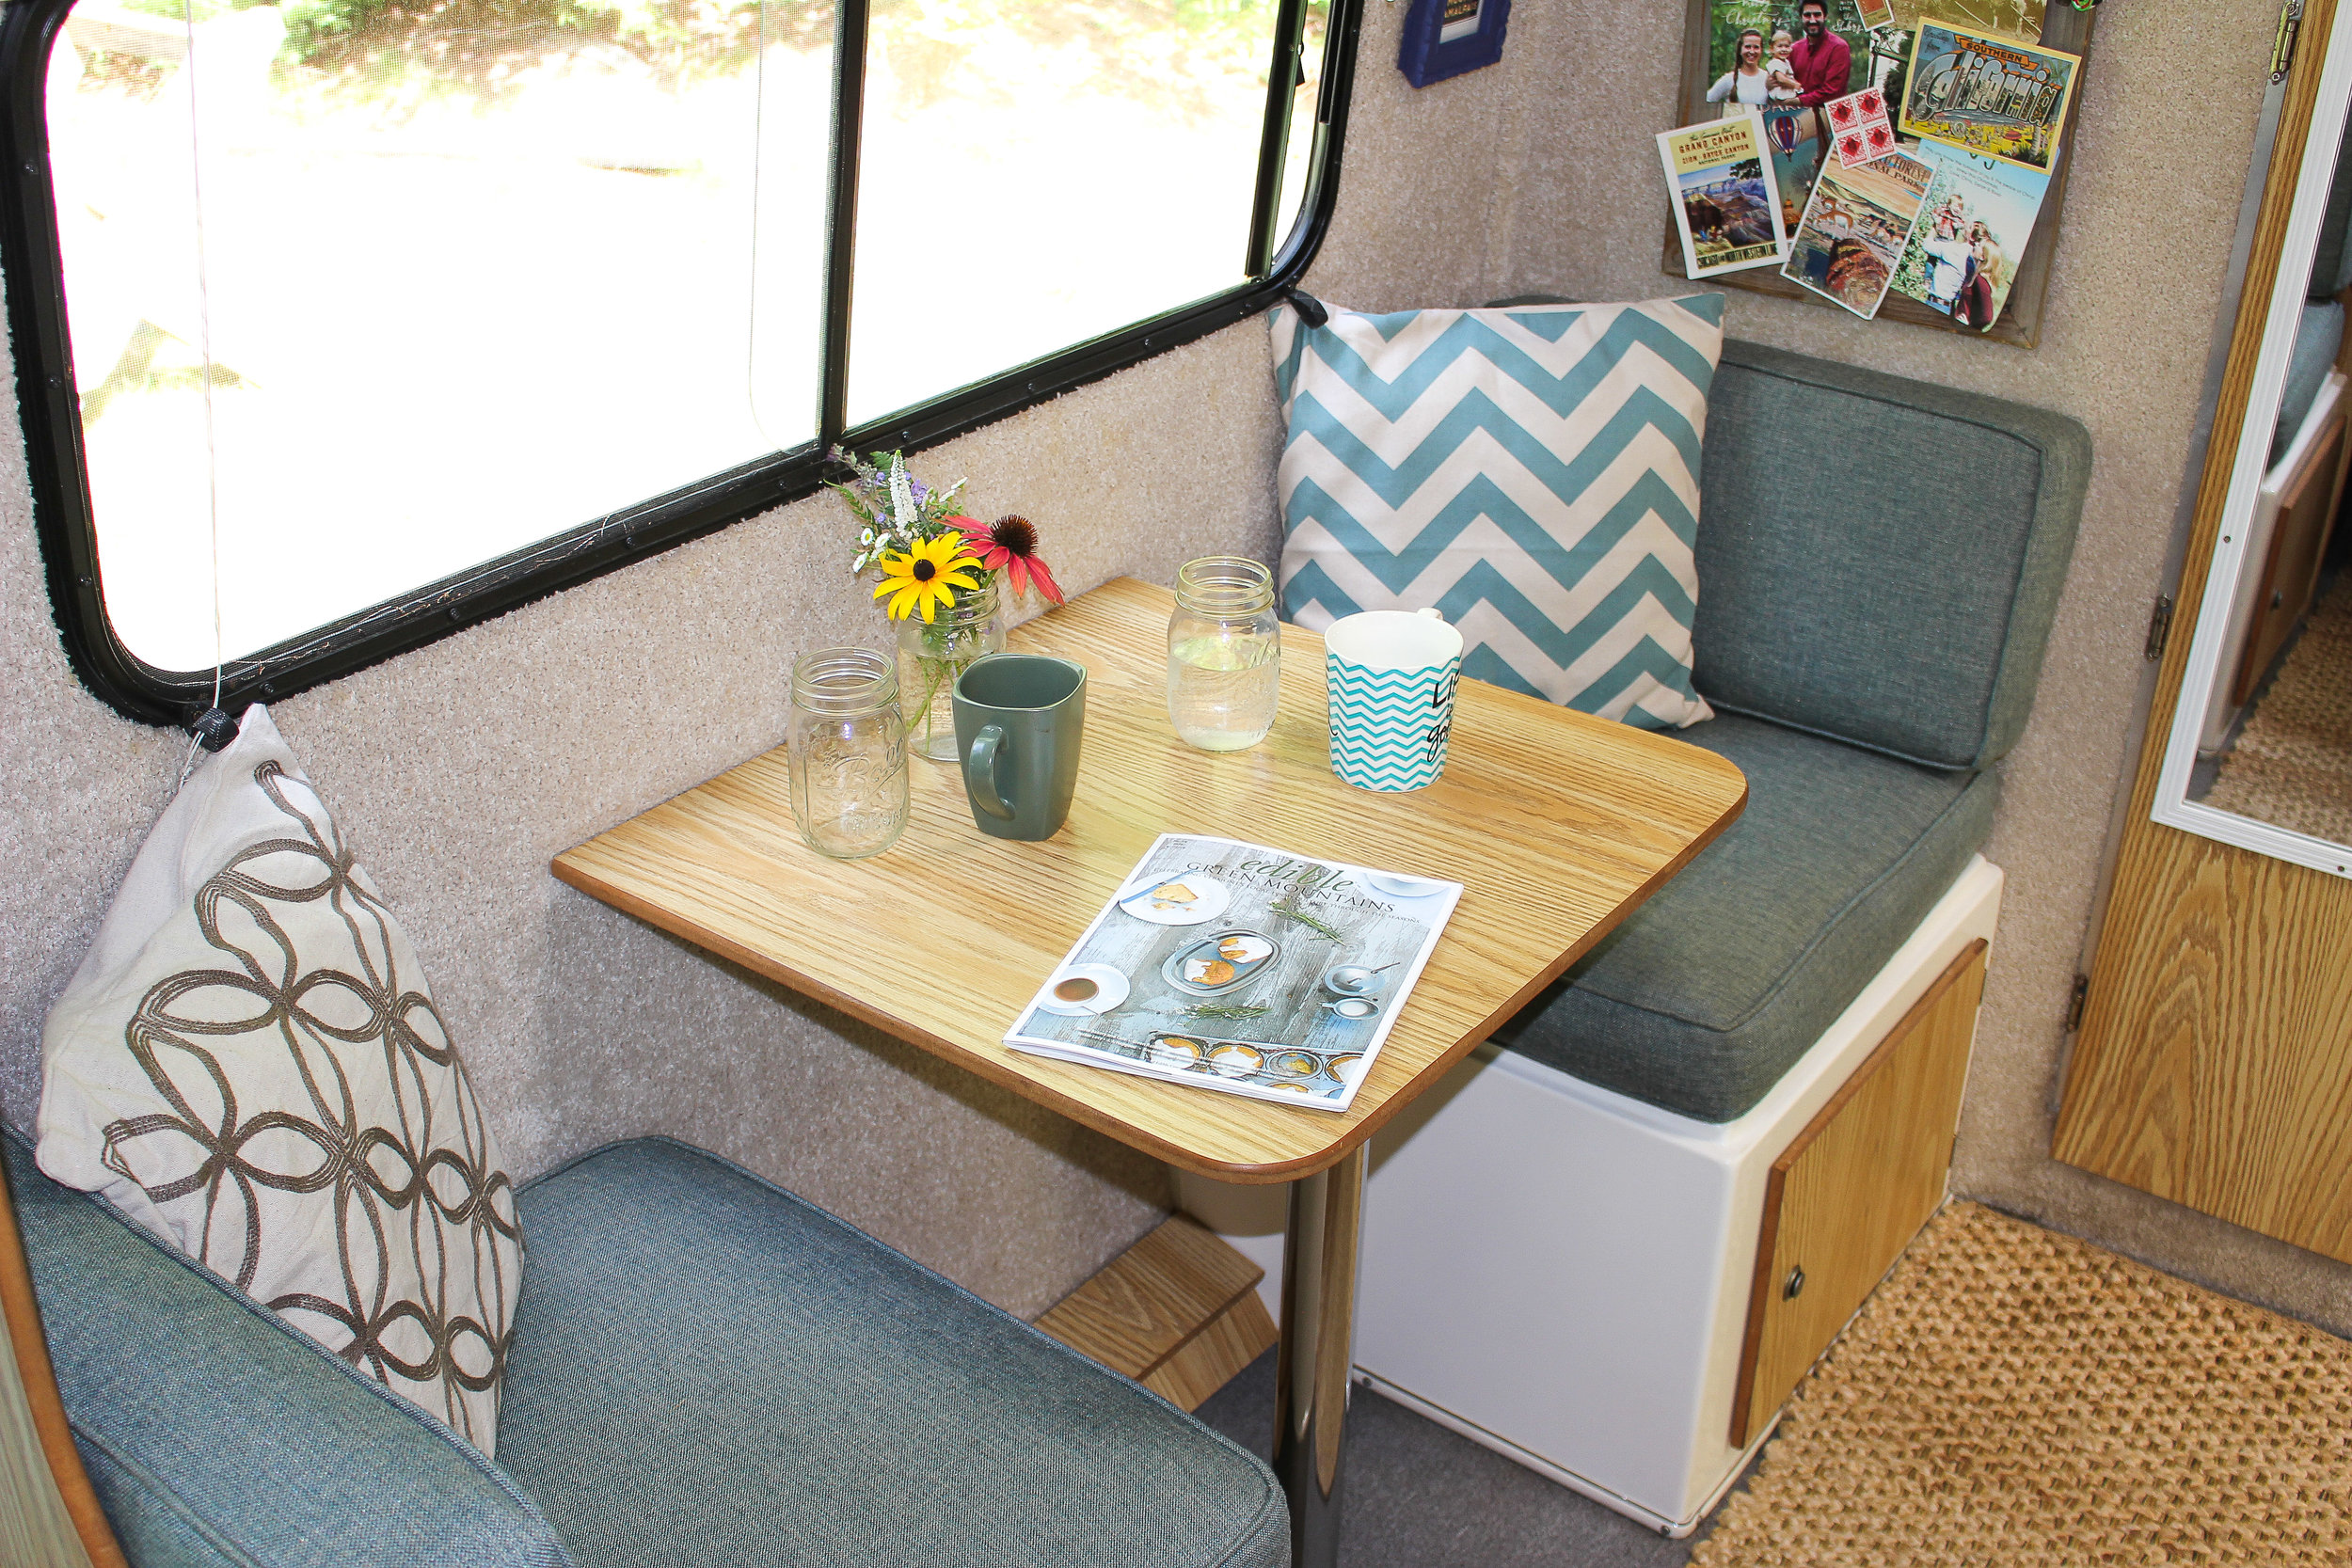 The breakfast table nook.